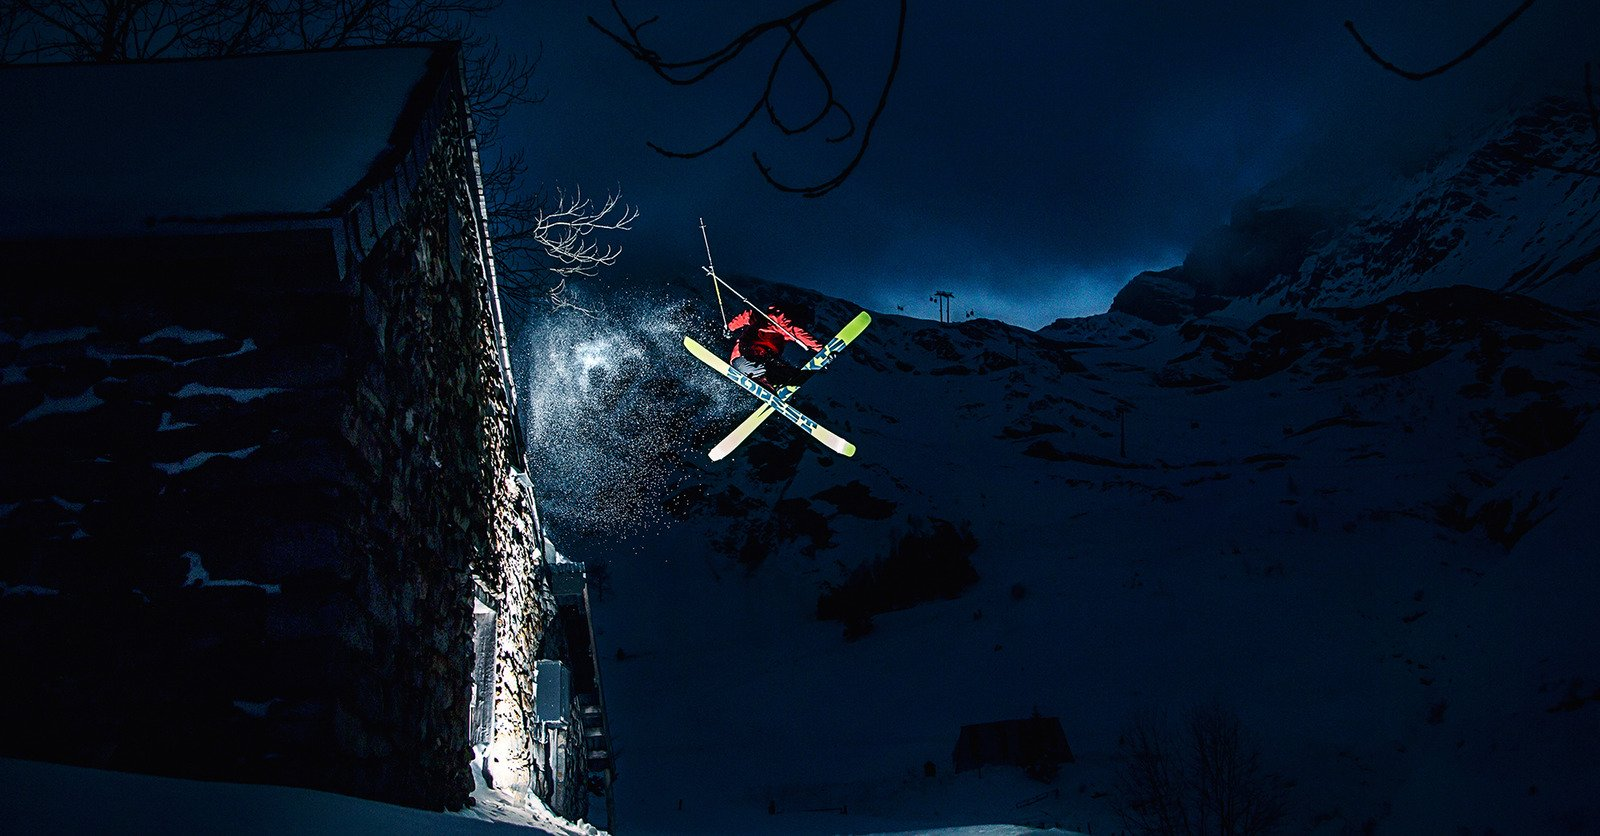 Skis Forest 2022